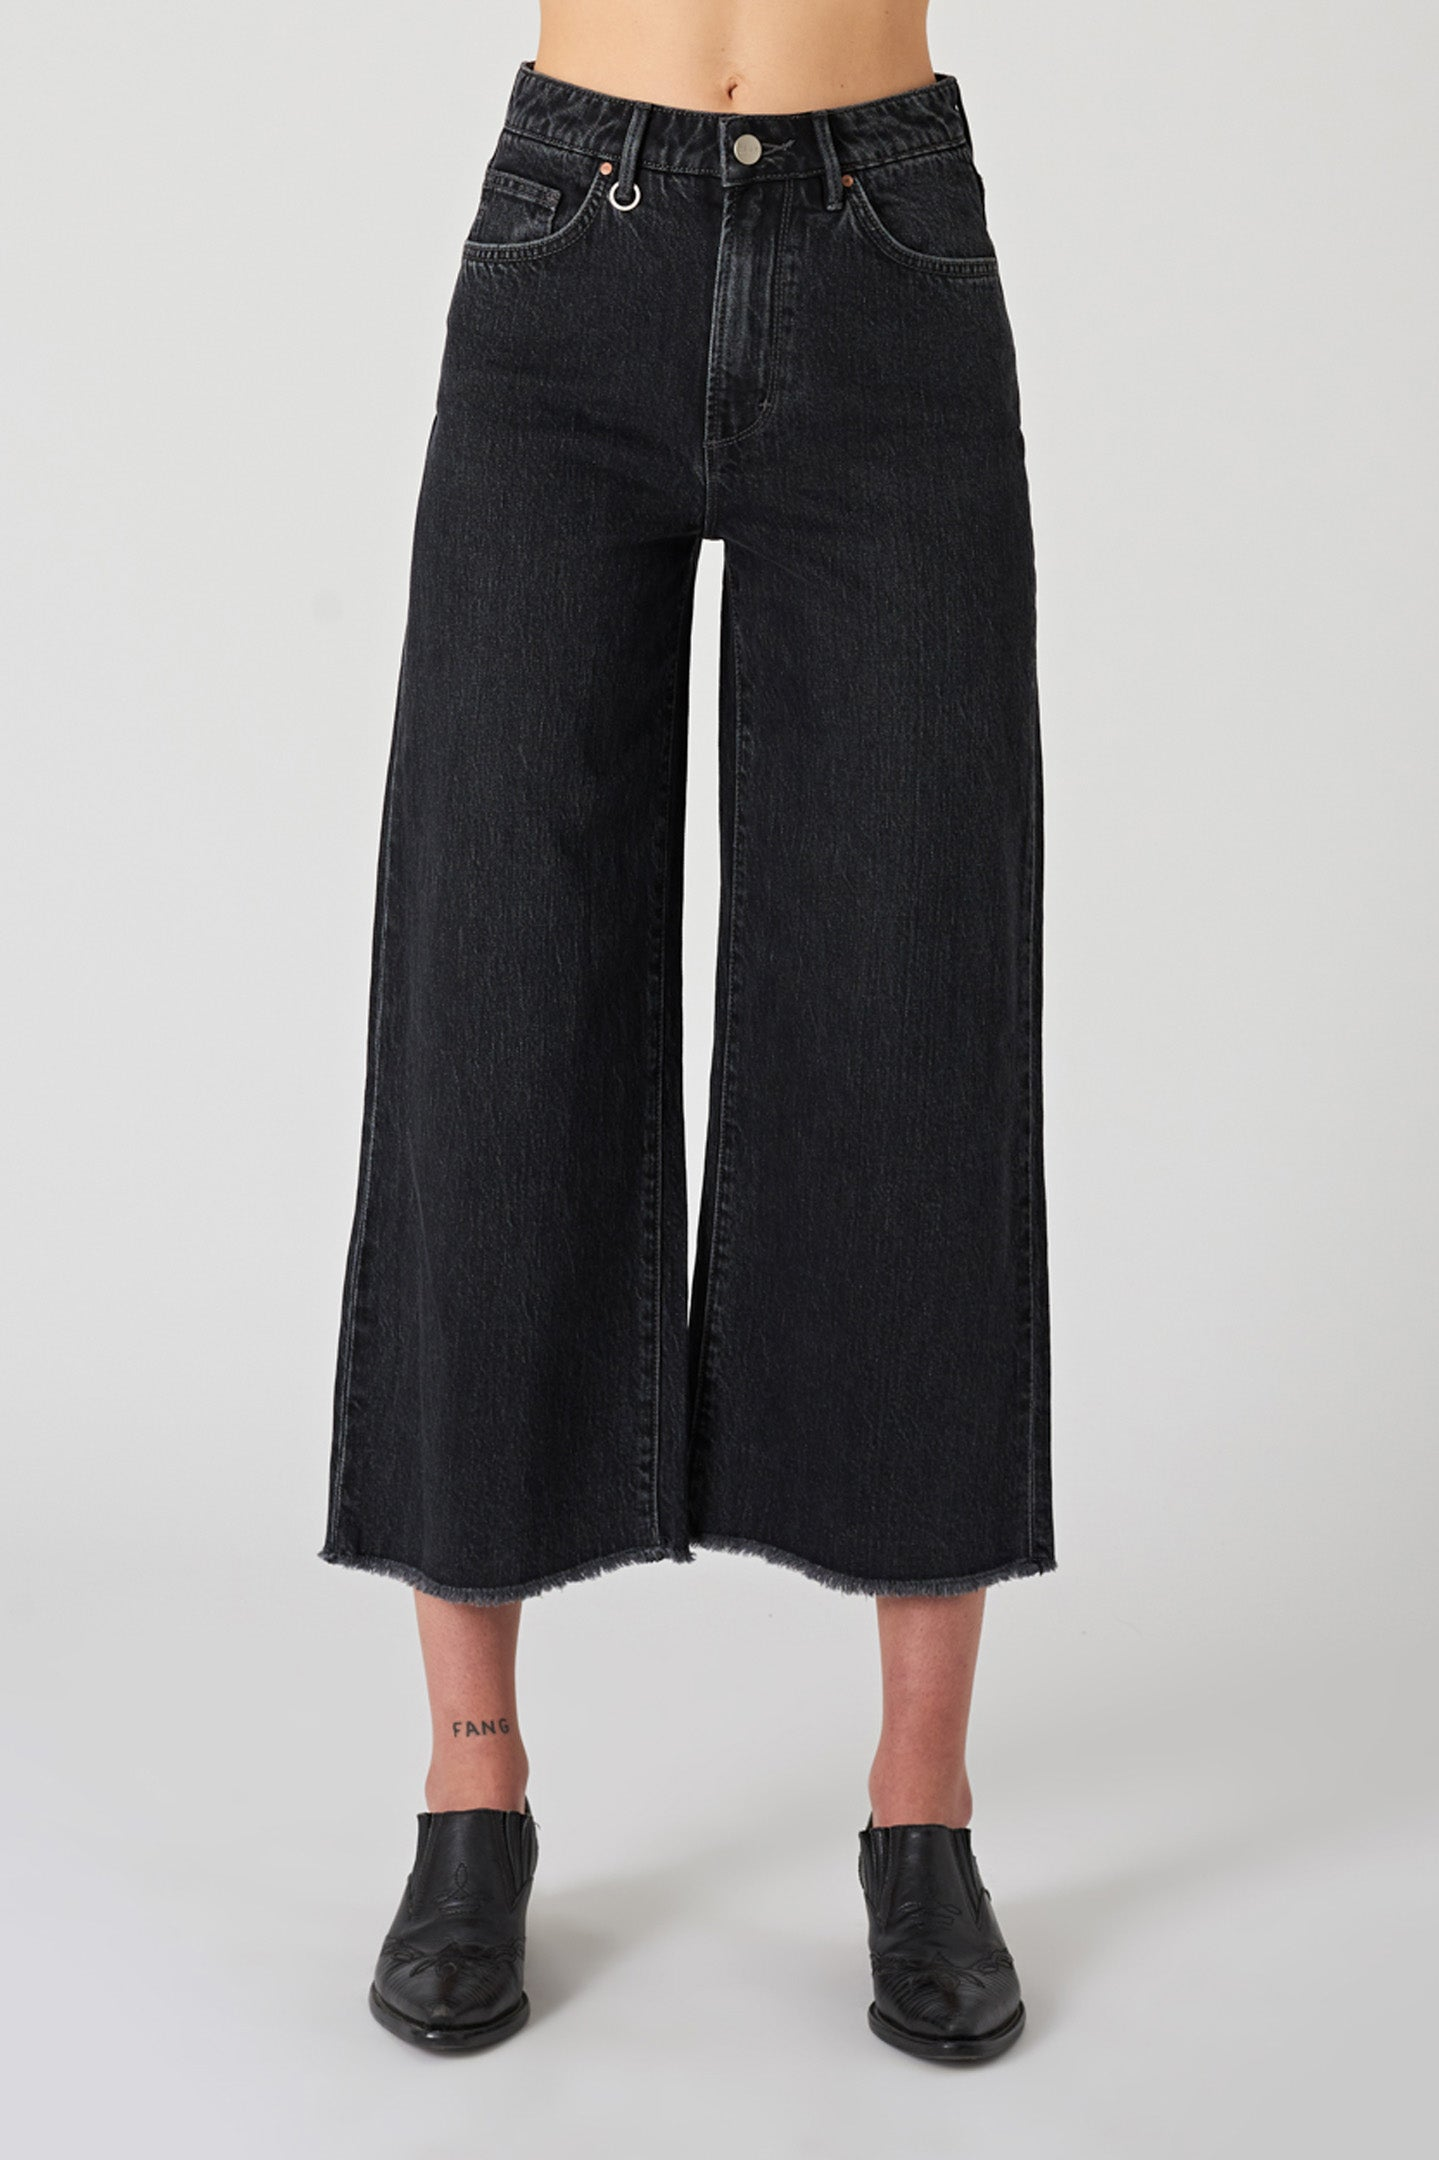 NEUW W'S PANTS PIXIE CROP - ZERO DUSTY BLACK